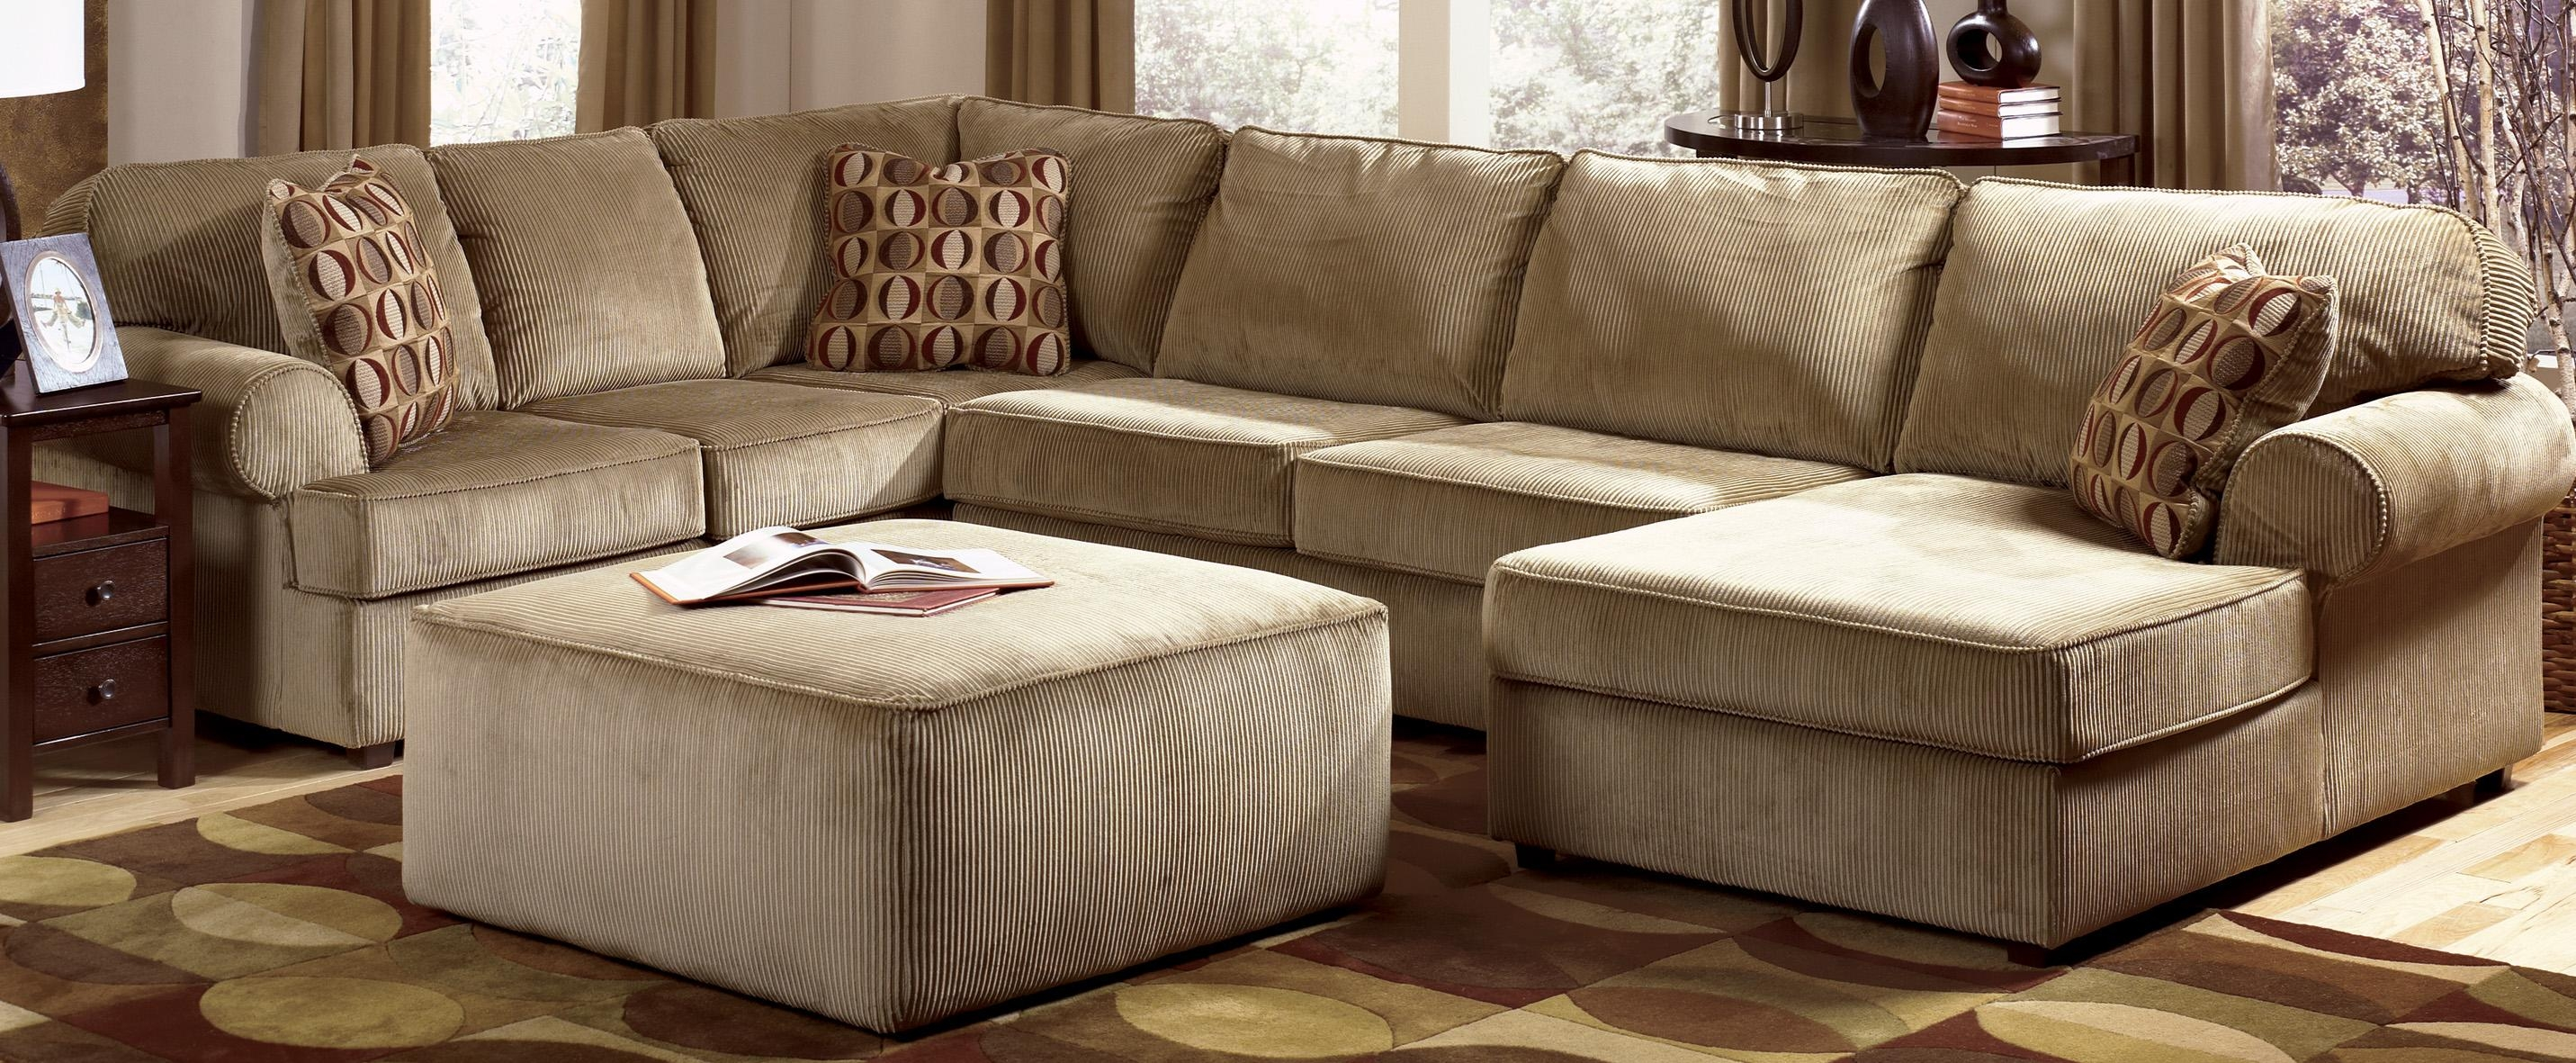 Sofa Set For Drawing Room With Price 20 Ideas Of Sofas Cheap Prices Sofa Ideas